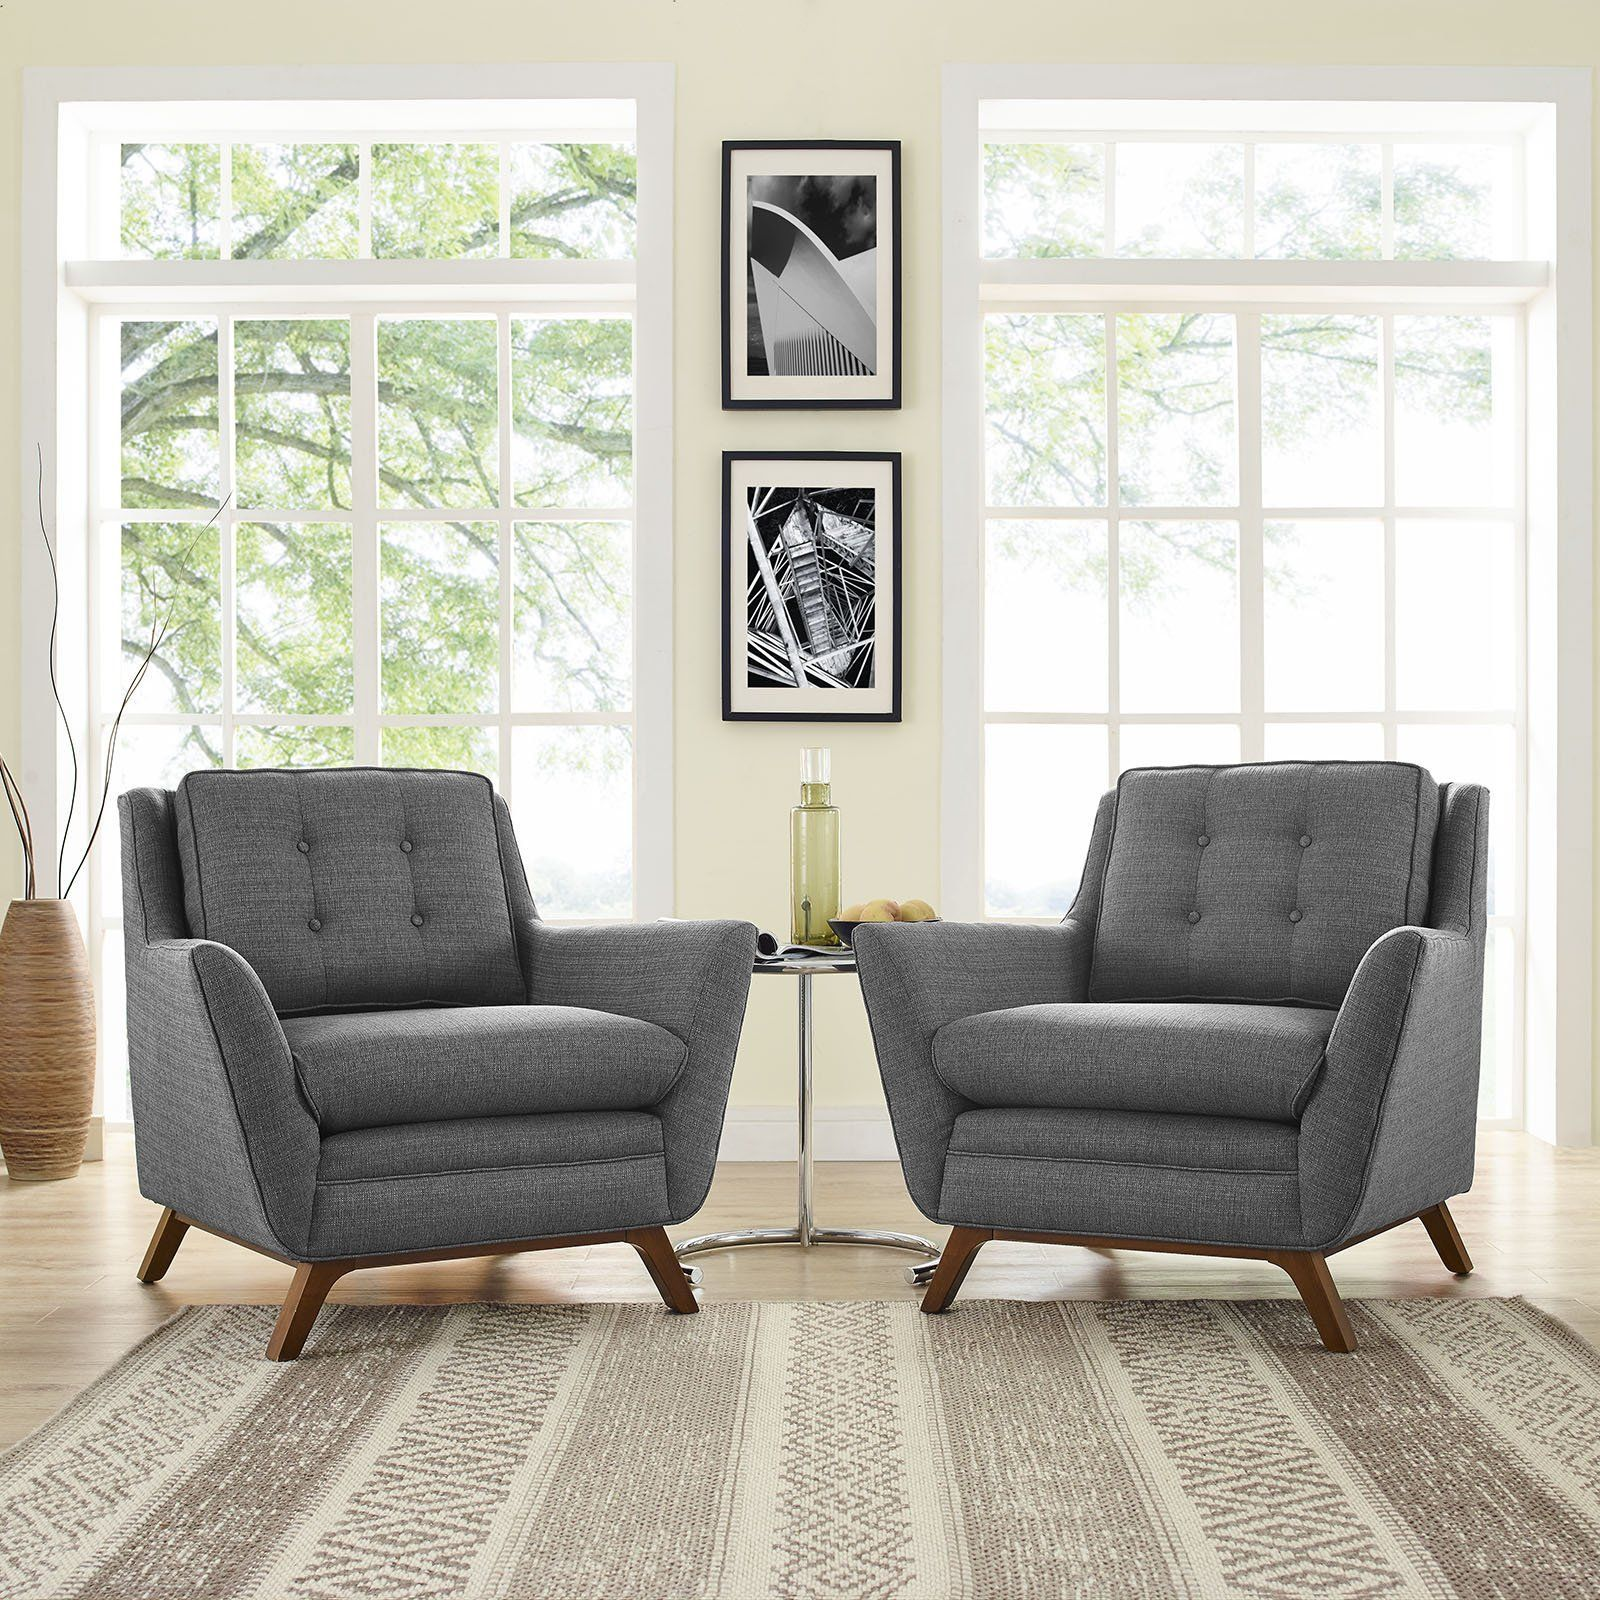 Modway Furniture Modern Beguile 2 Piece Upholstered Fabric ...